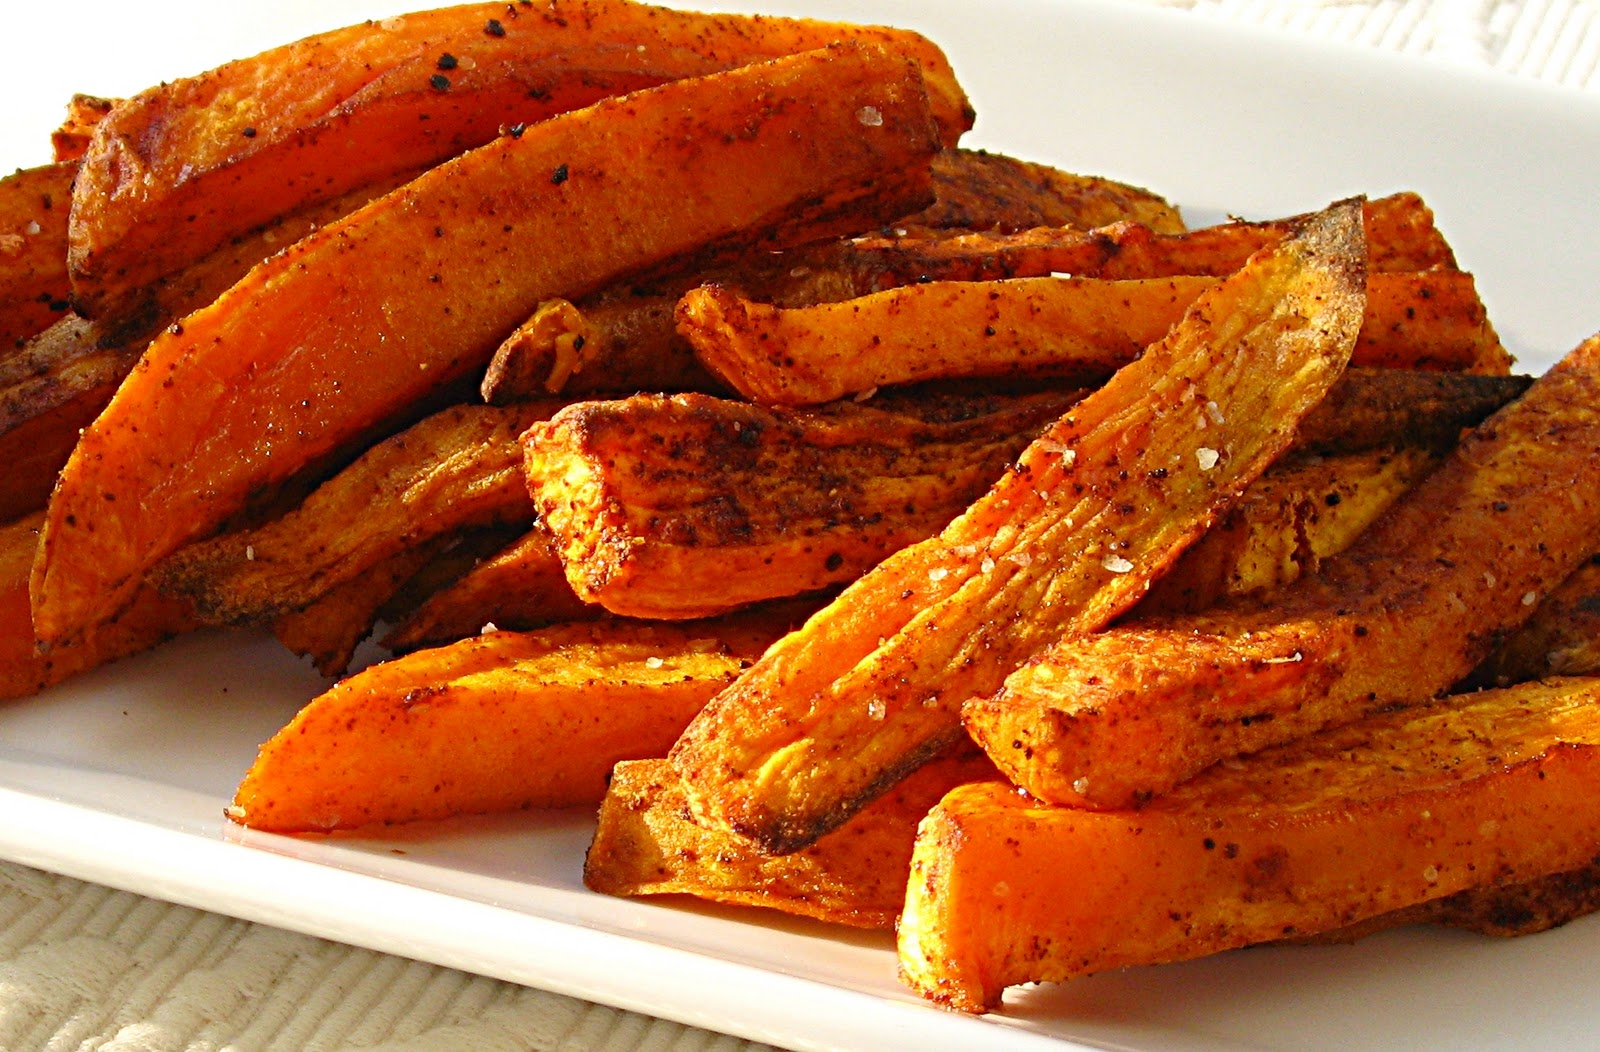 All That Splatters: Sweet Potato Oven Fries with Avocado Dip